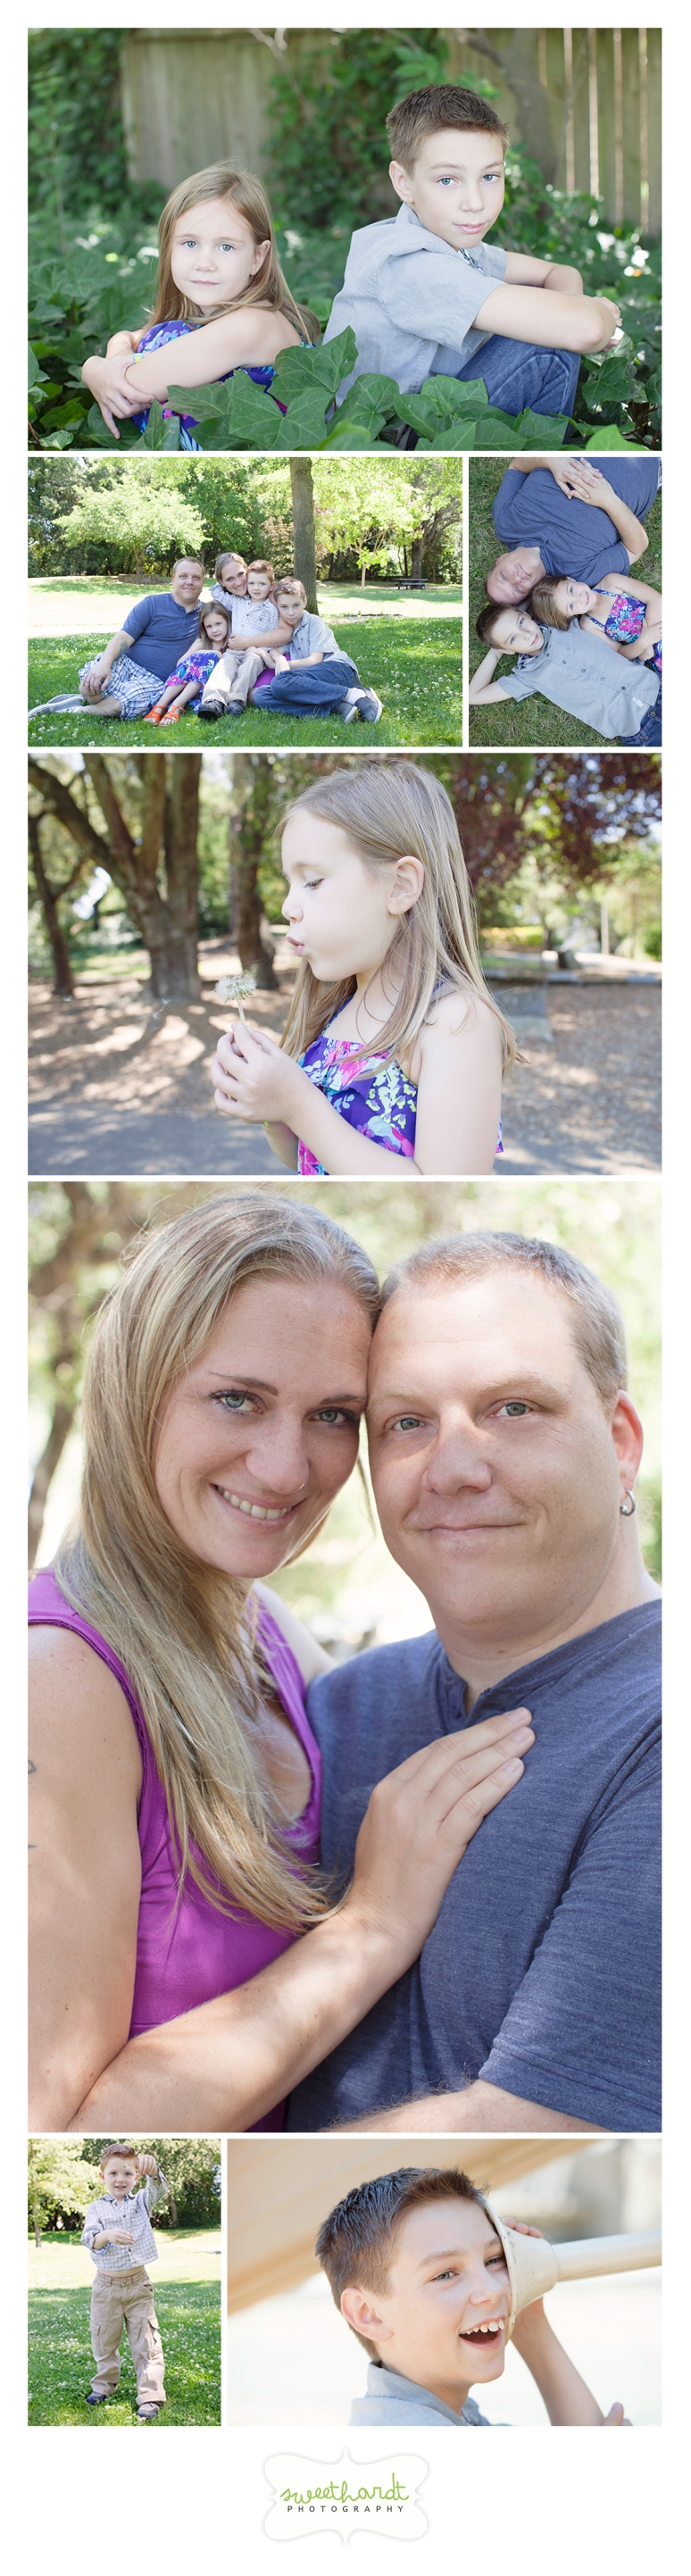 Family Portrait Session | J Family